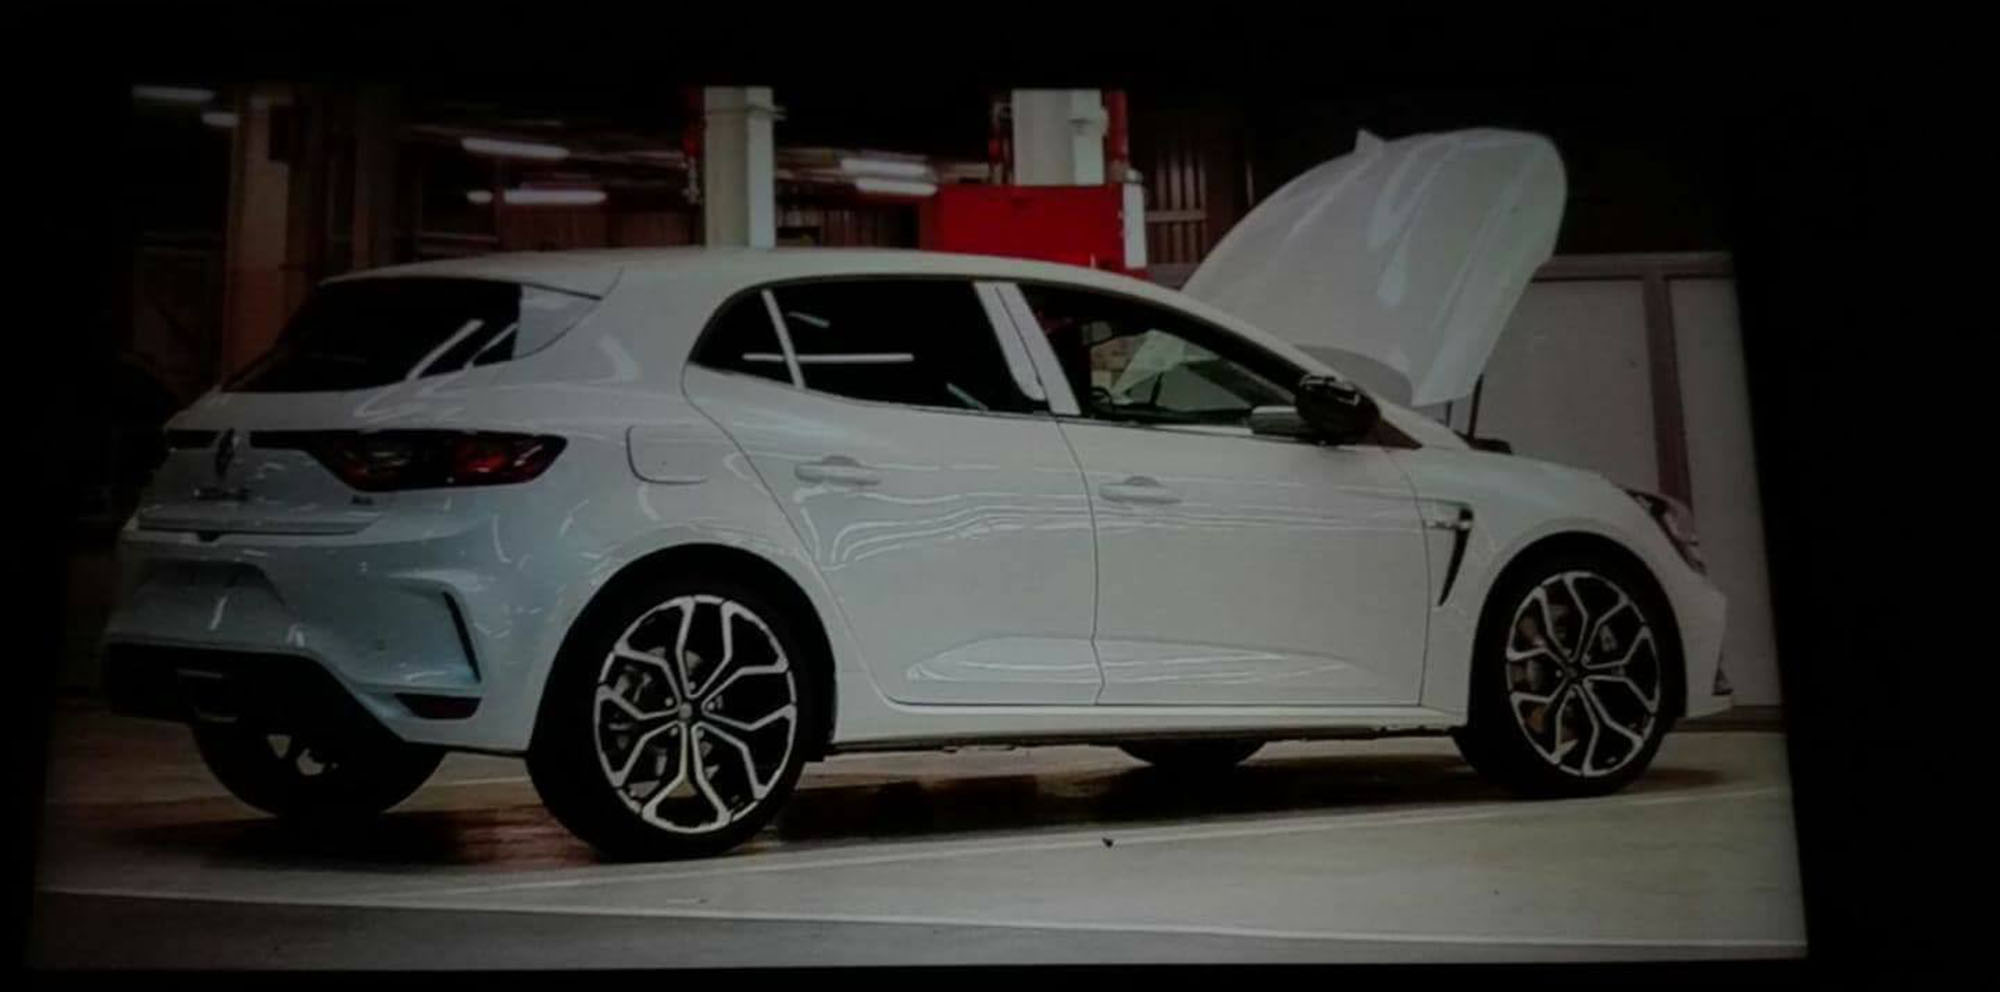 2018 Renault Megane Rs Side Profile Leaked Photos 1 Of 3